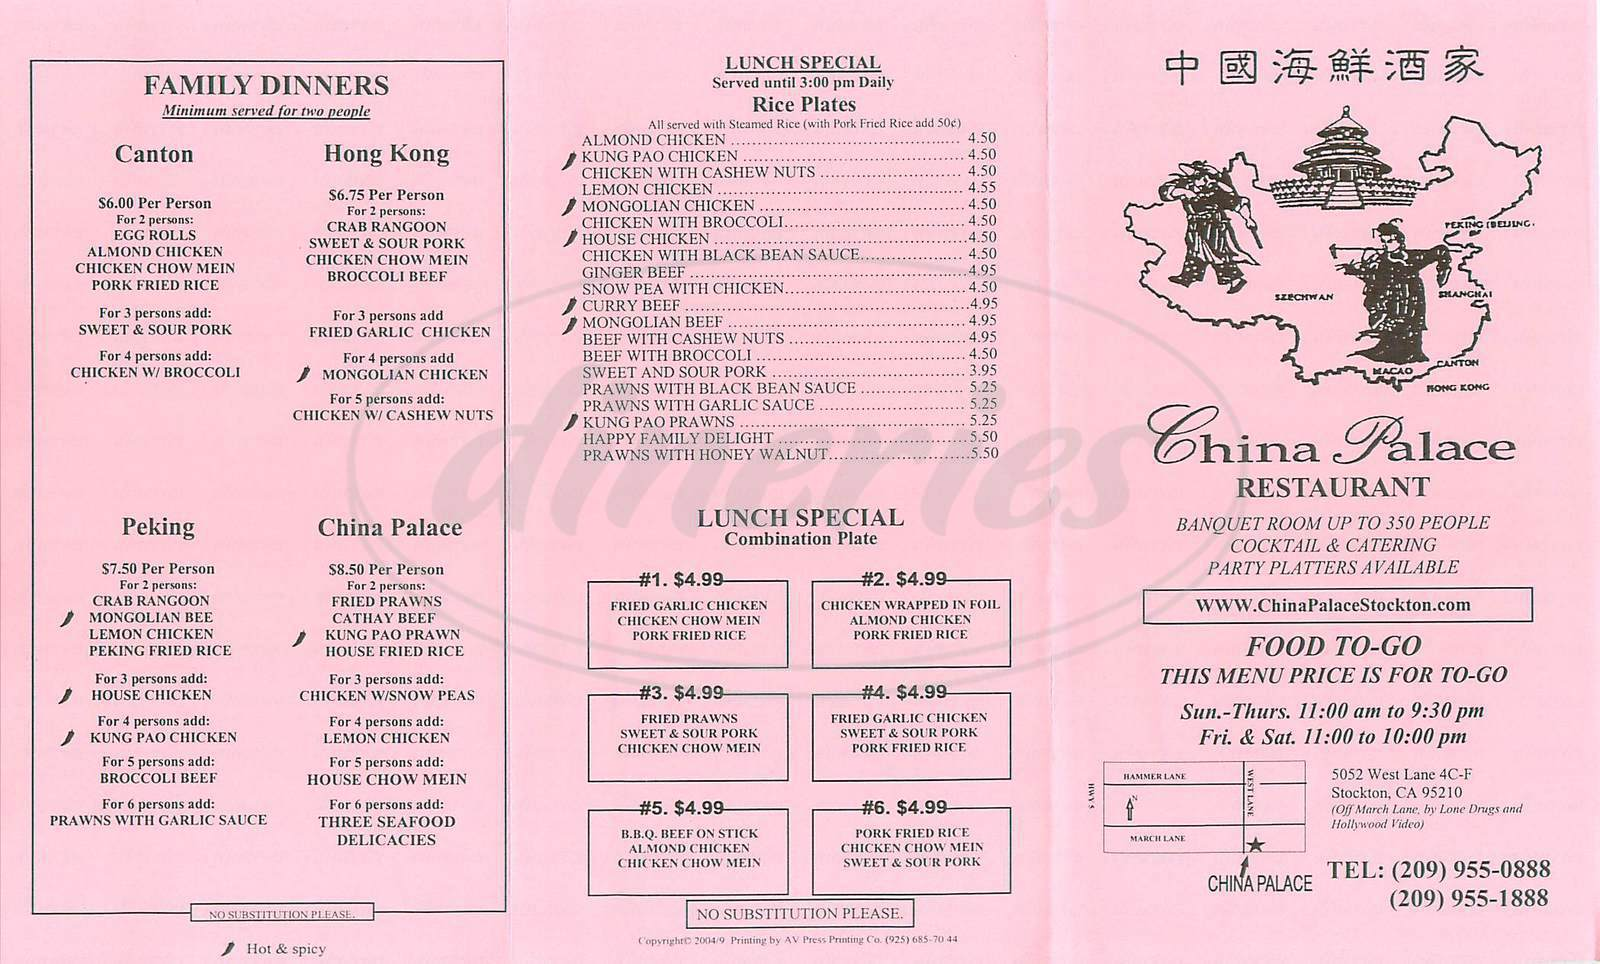 menu for China Palace Restaurant